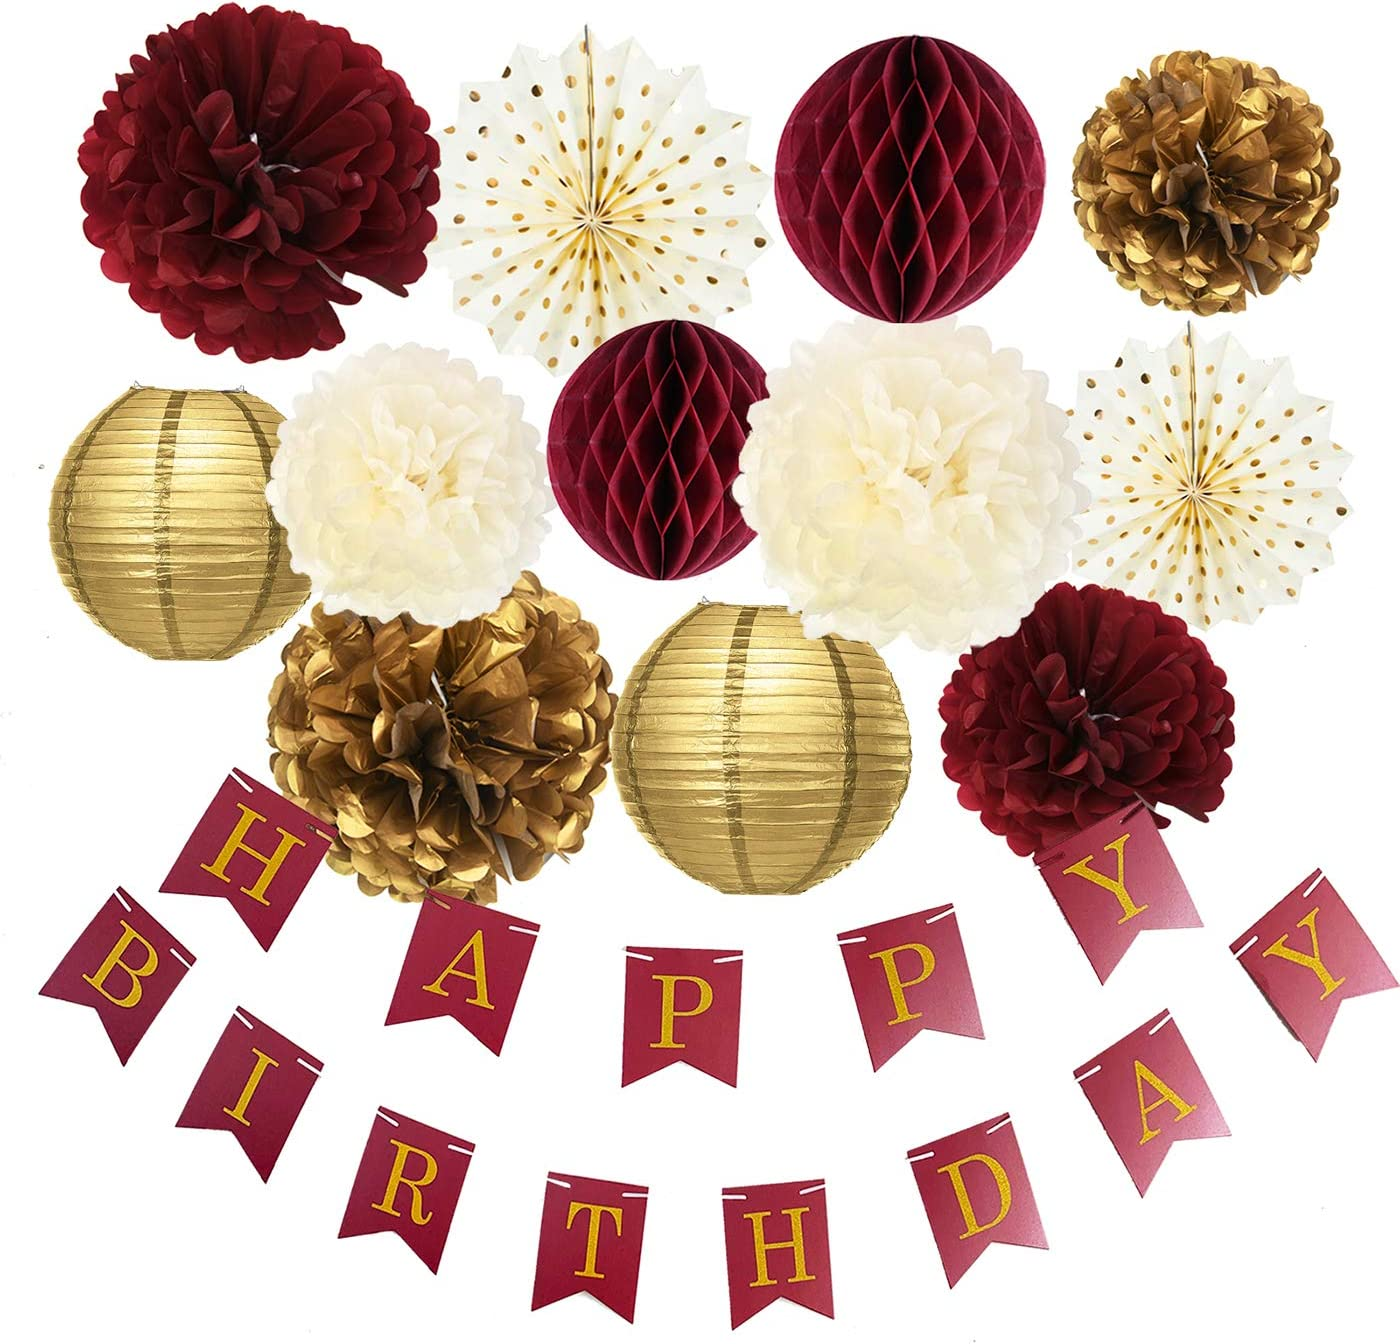 Burgundy Gold Birthday Party Decorations Burgundy Gold Happy Birthday Banner Tssue Pom Pom Honeycomb Balls Polka Dot Fans for Burgundy Fall Birthday Party Supplies/30th Birthday Decorations